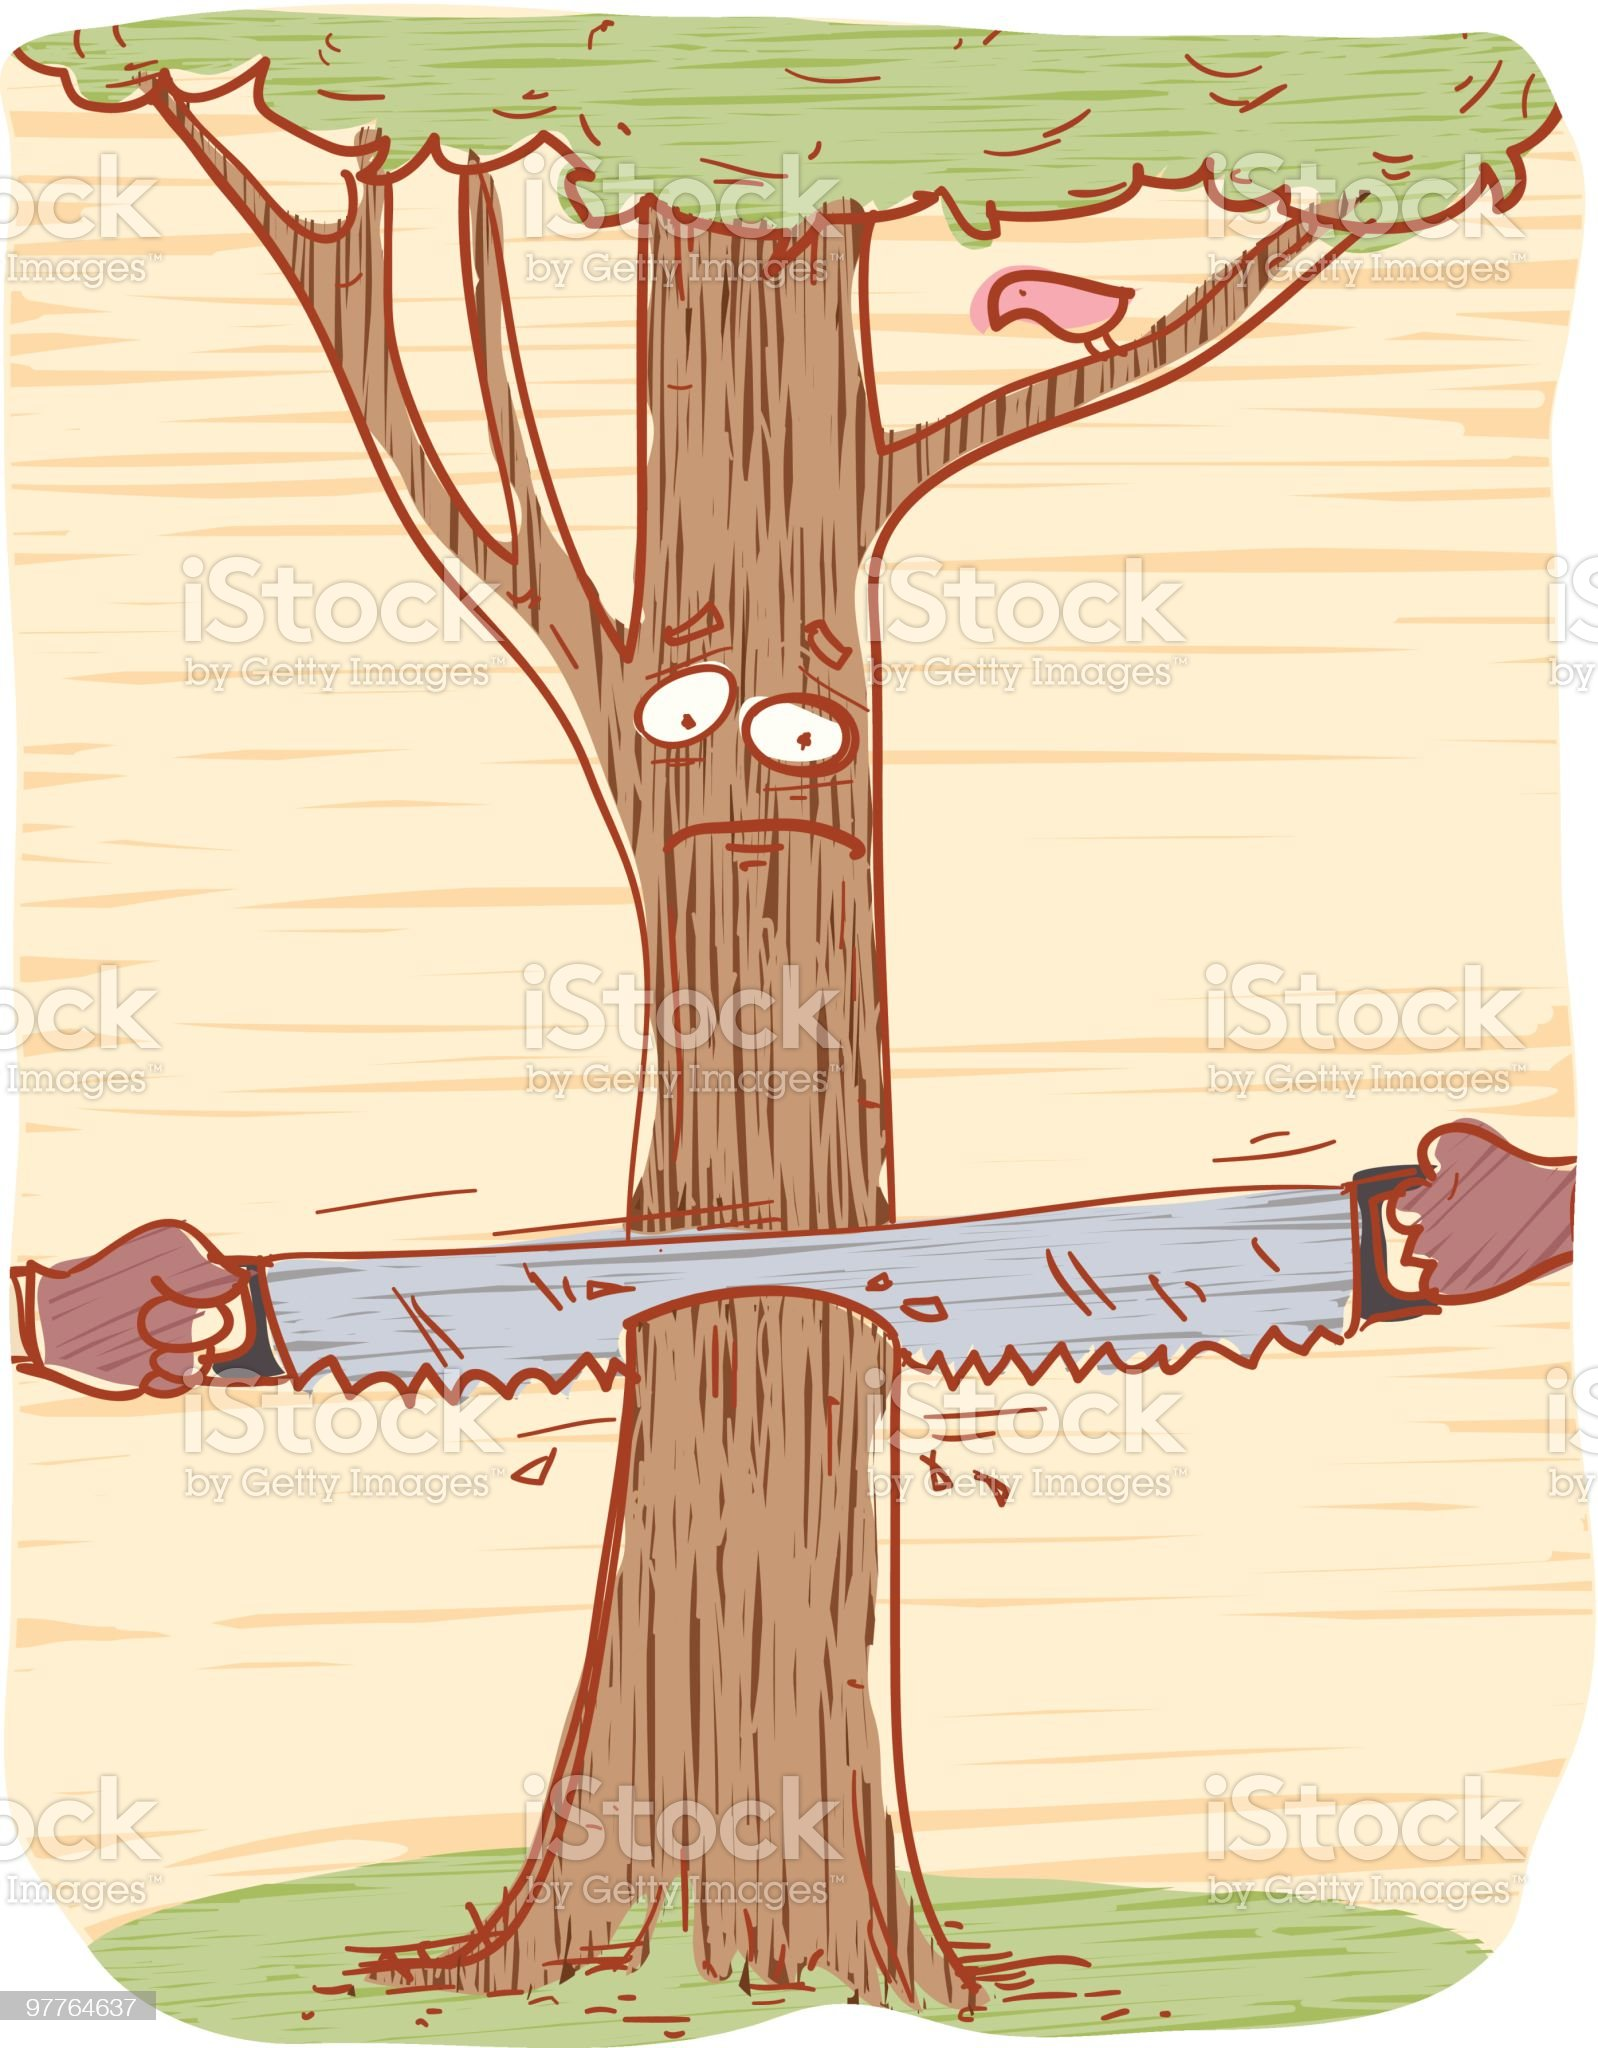 Sad tree royalty-free stock vector art